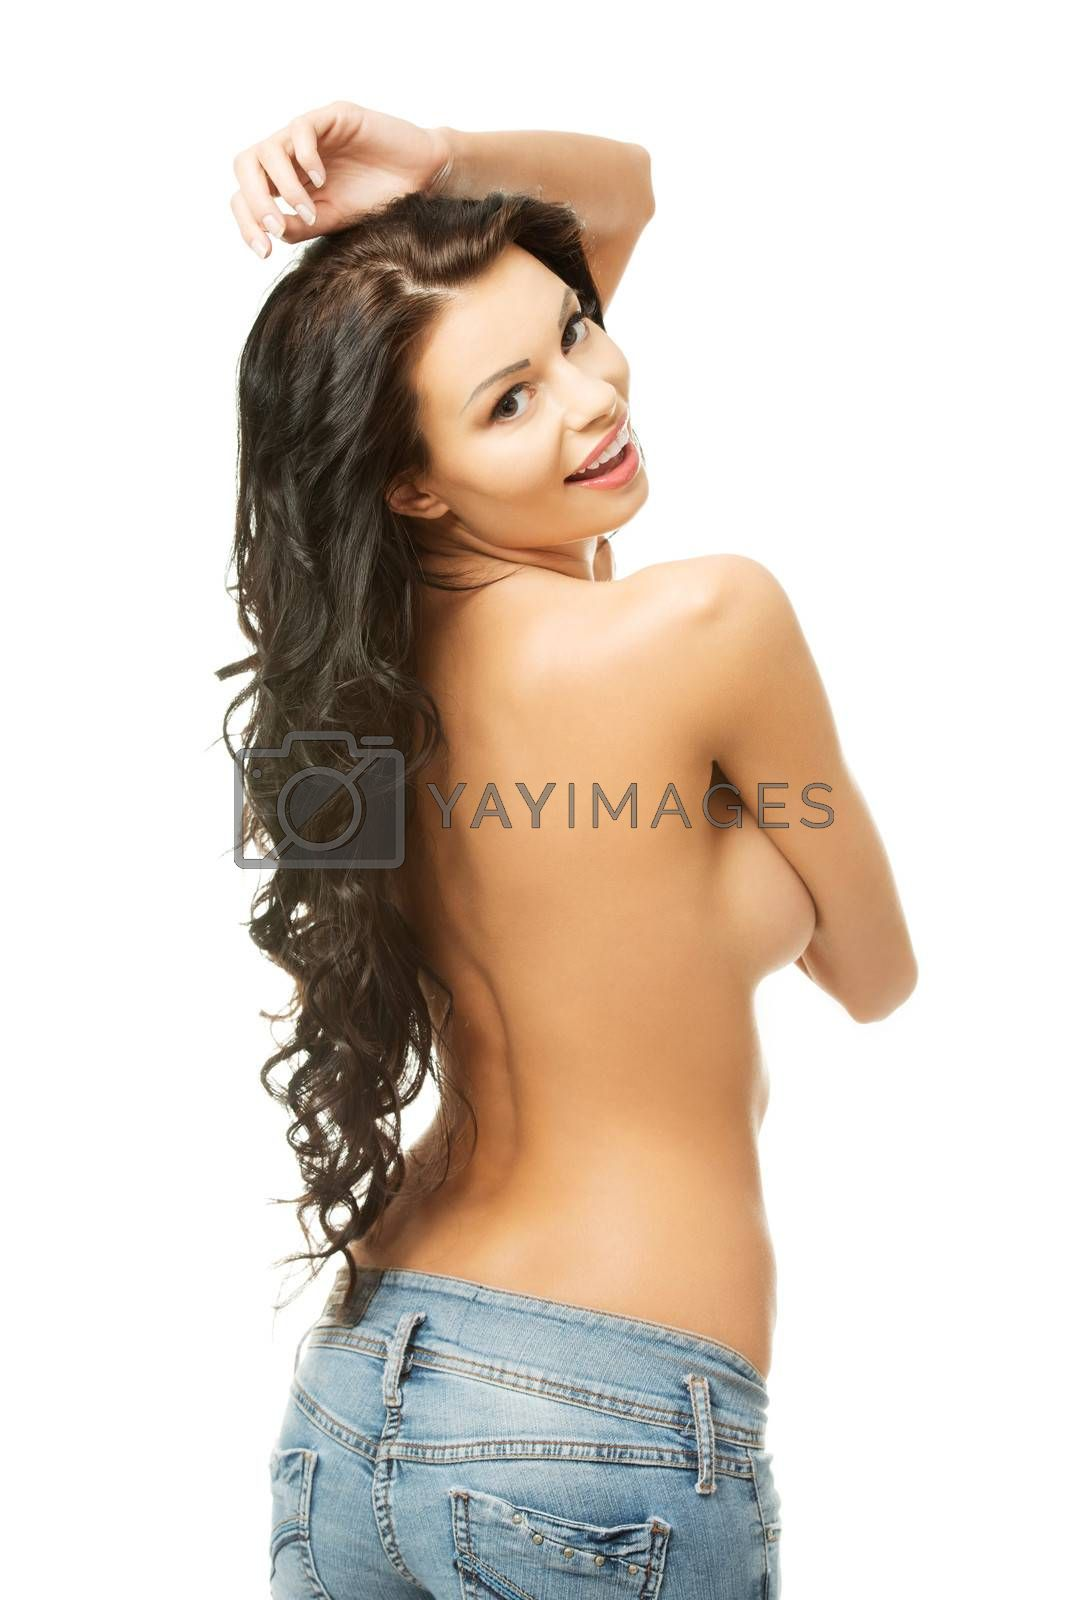 Beautiful fit erotic woman in blue jeans, isolated on white background